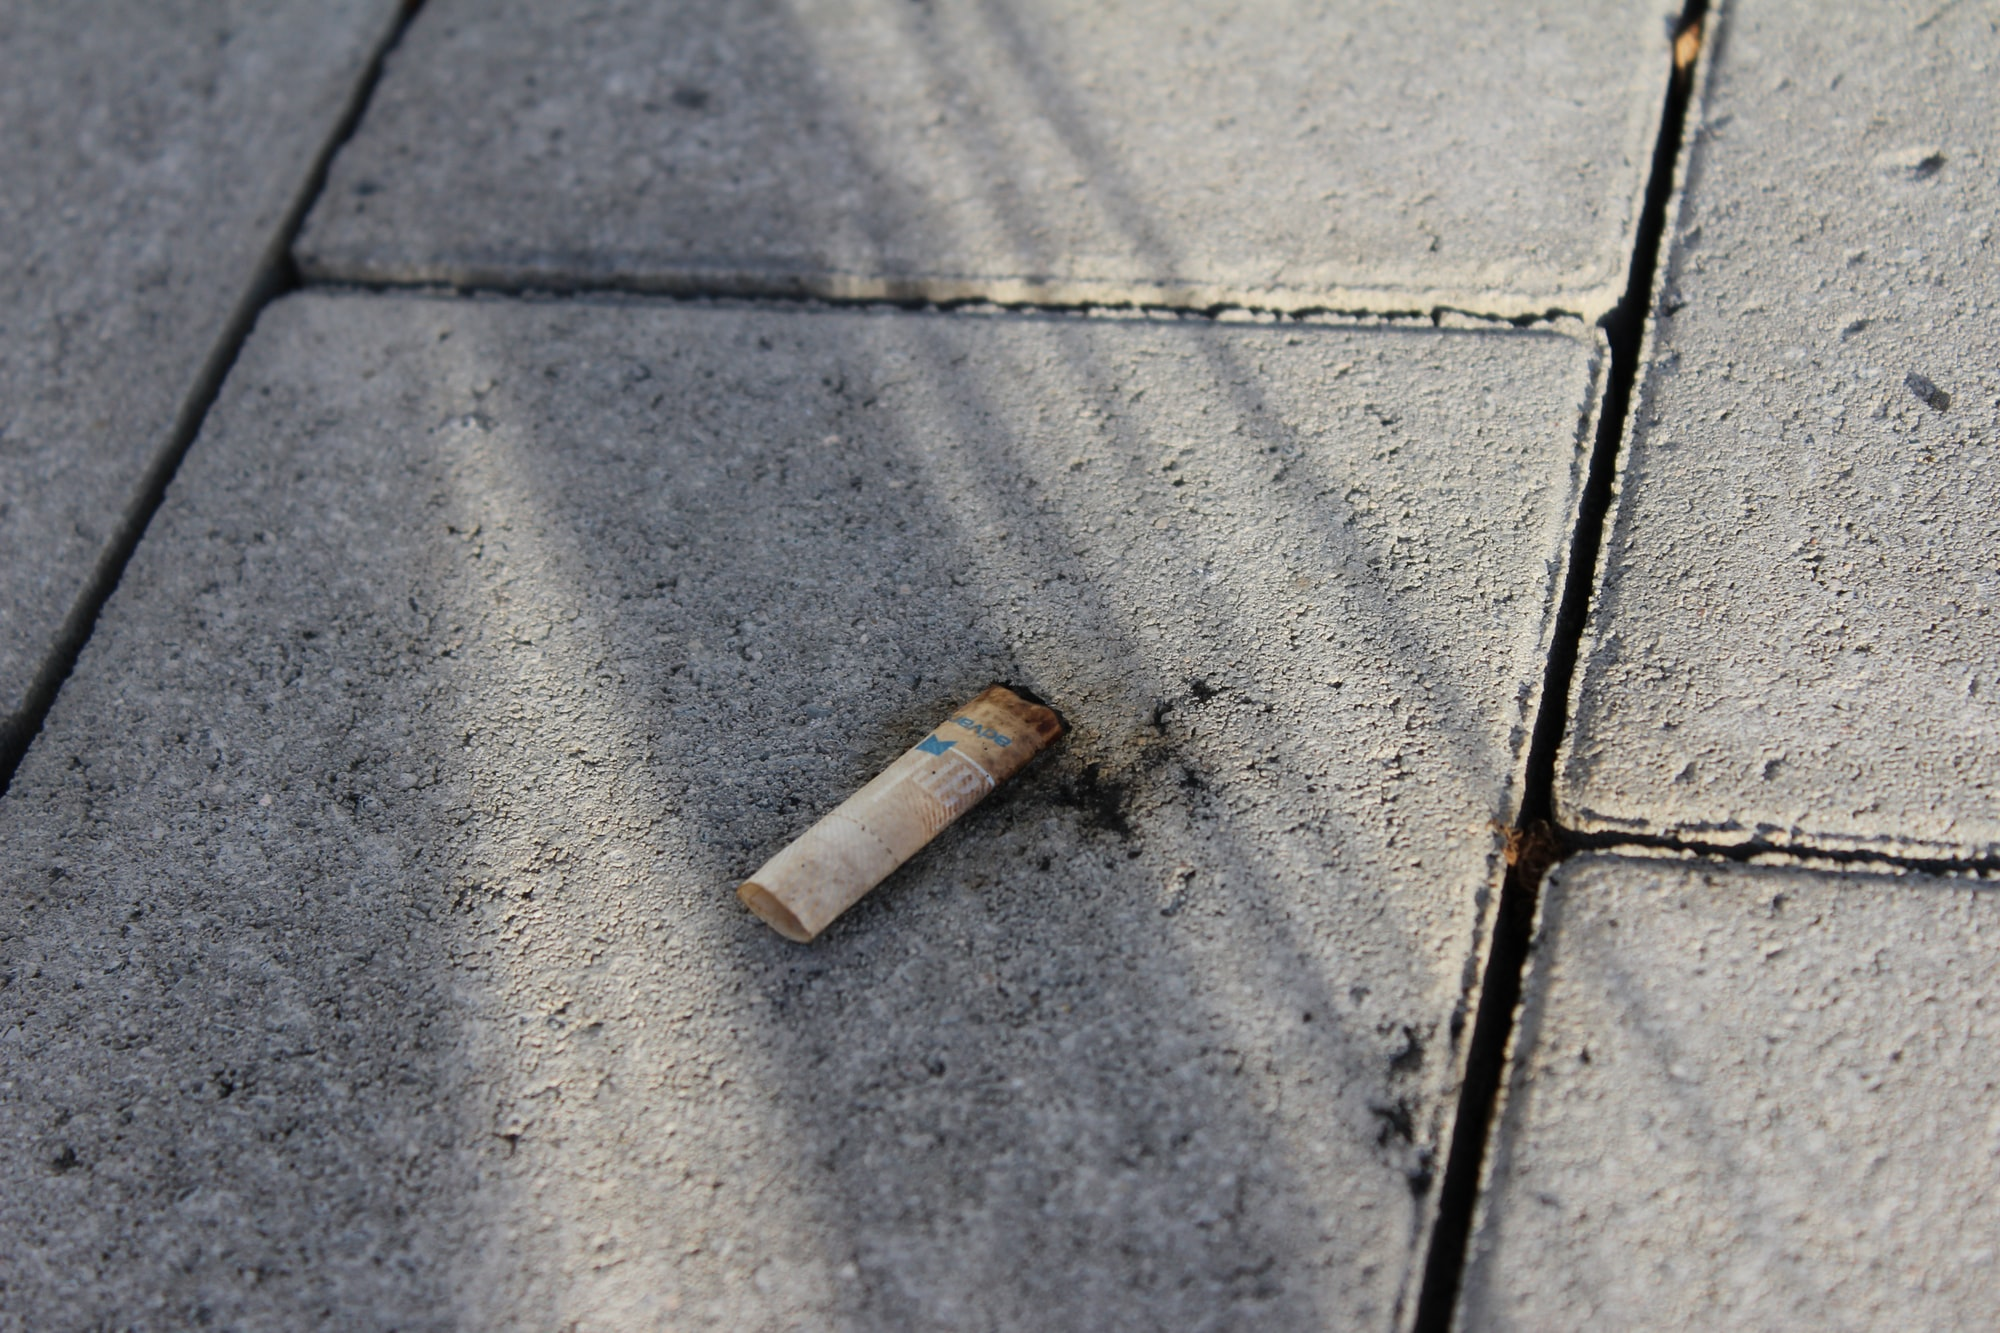 The cigarette on the roof